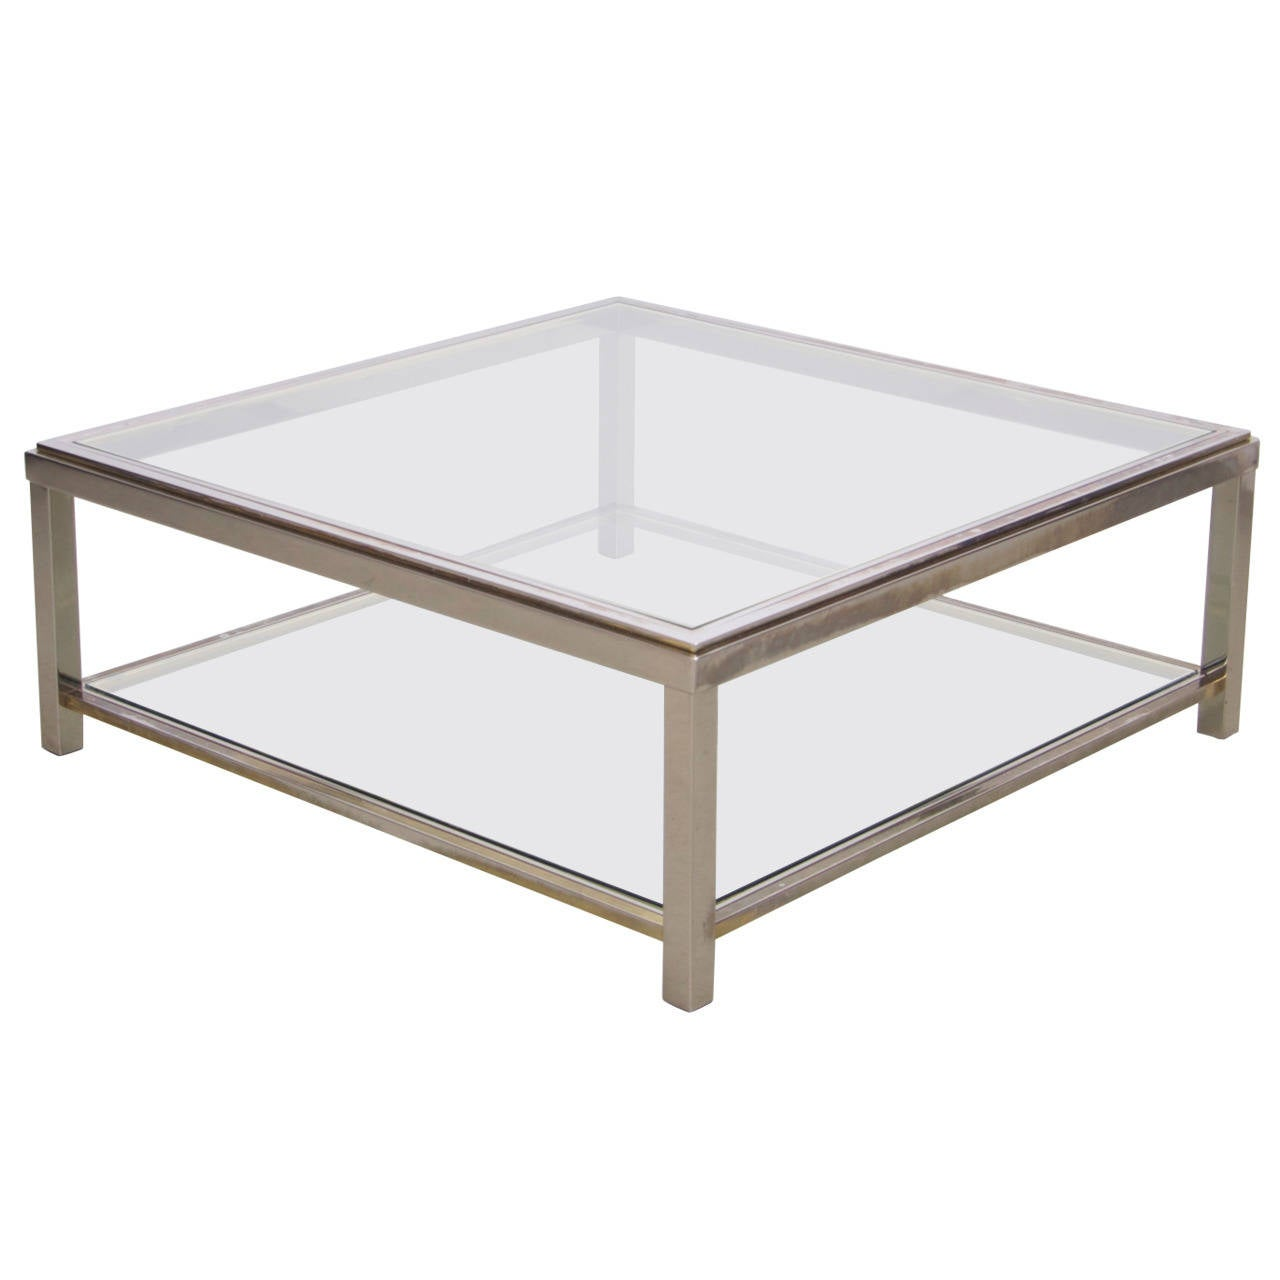 Two Tier Brass And Chrome Coffee Table Attributed To Willy Rizzo For Sale At 1stdibs